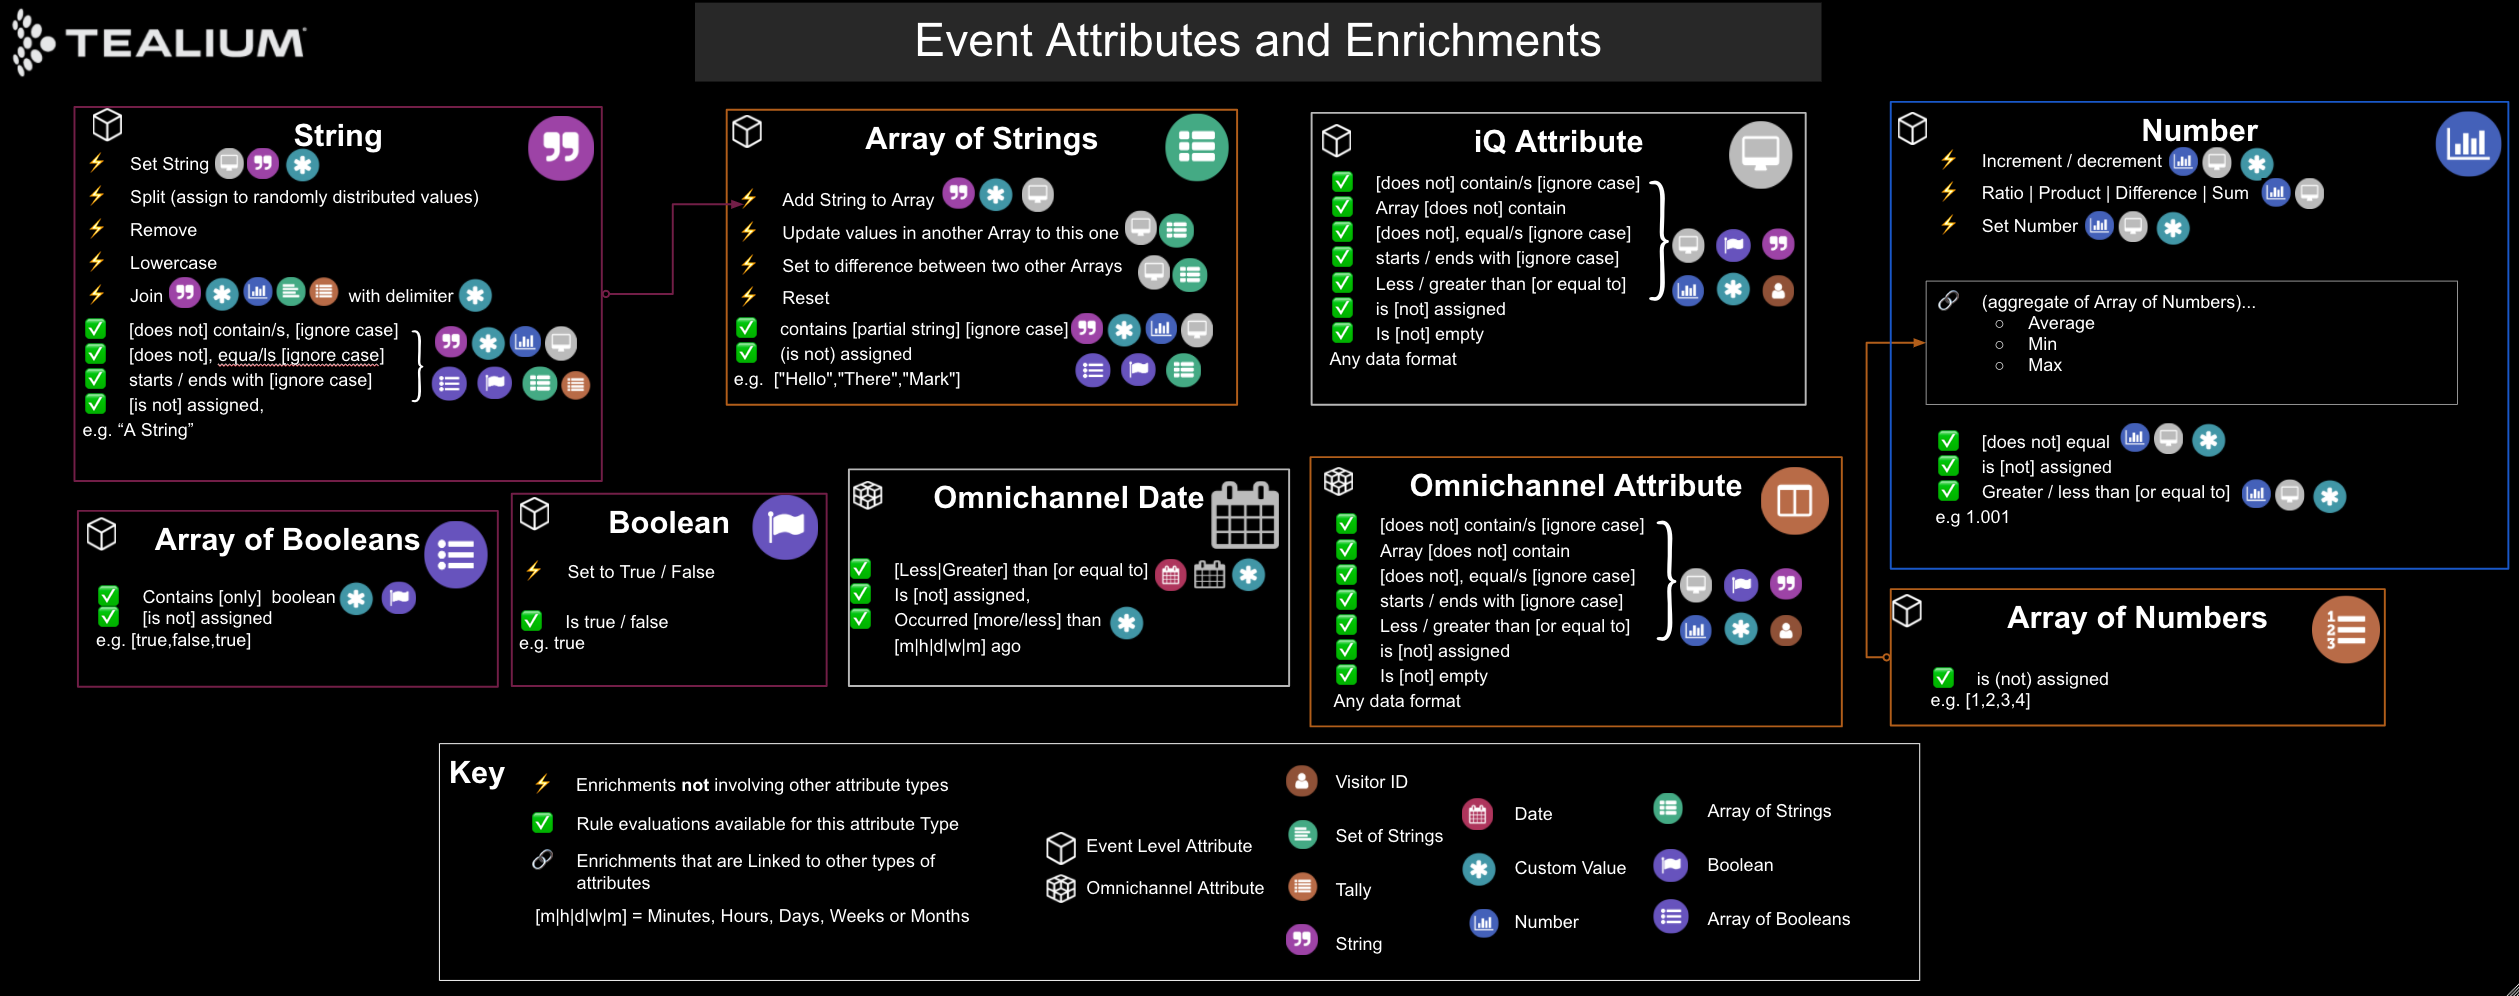 udh-event-attributes-enrichments-diagram.png